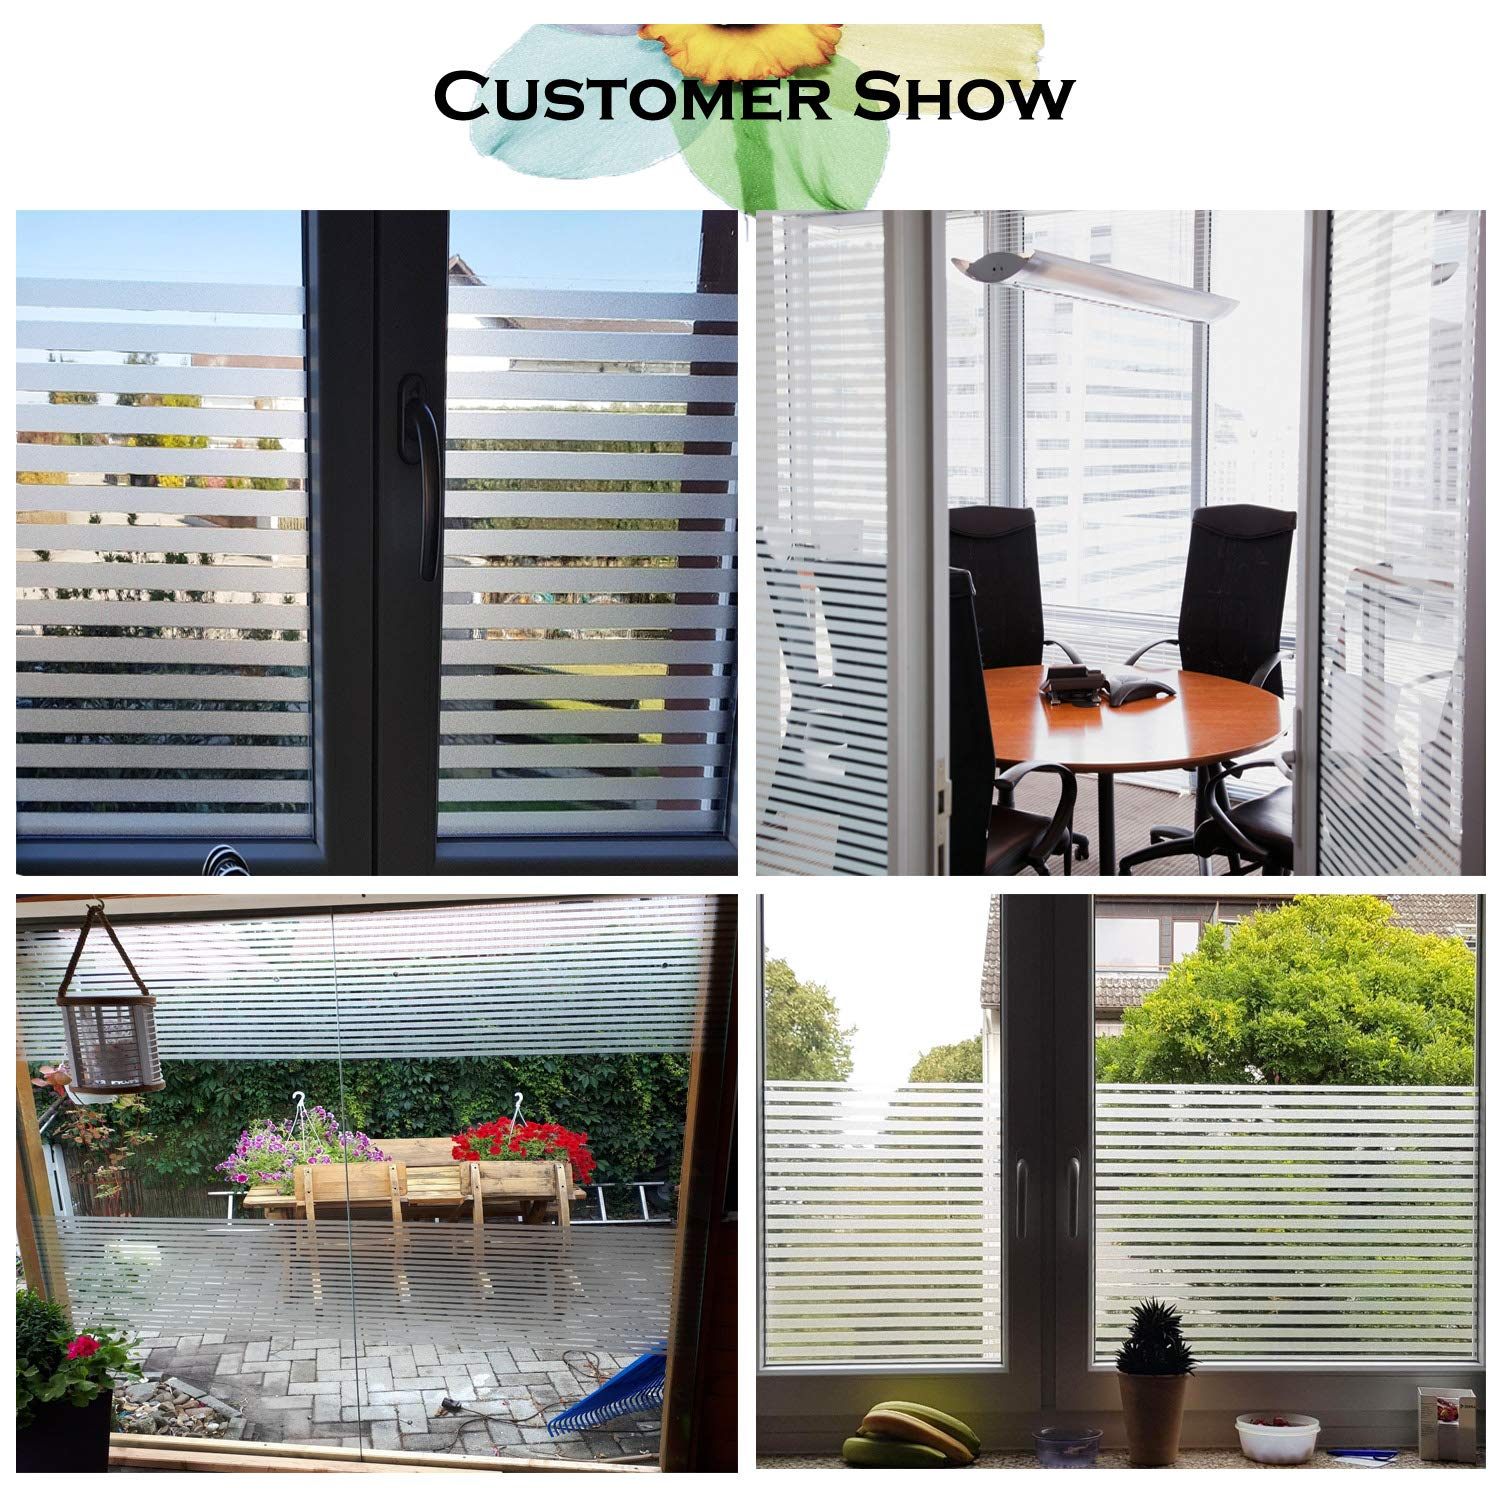 Bloss PVC Home Frosted Sticker Glass Film Privacy Scroll Flower Decorative Self Adhesive Removeable Window Cling Vinyl//Heat Control//Anti UVfor Home and Office 17.7-by-78.7 Inch